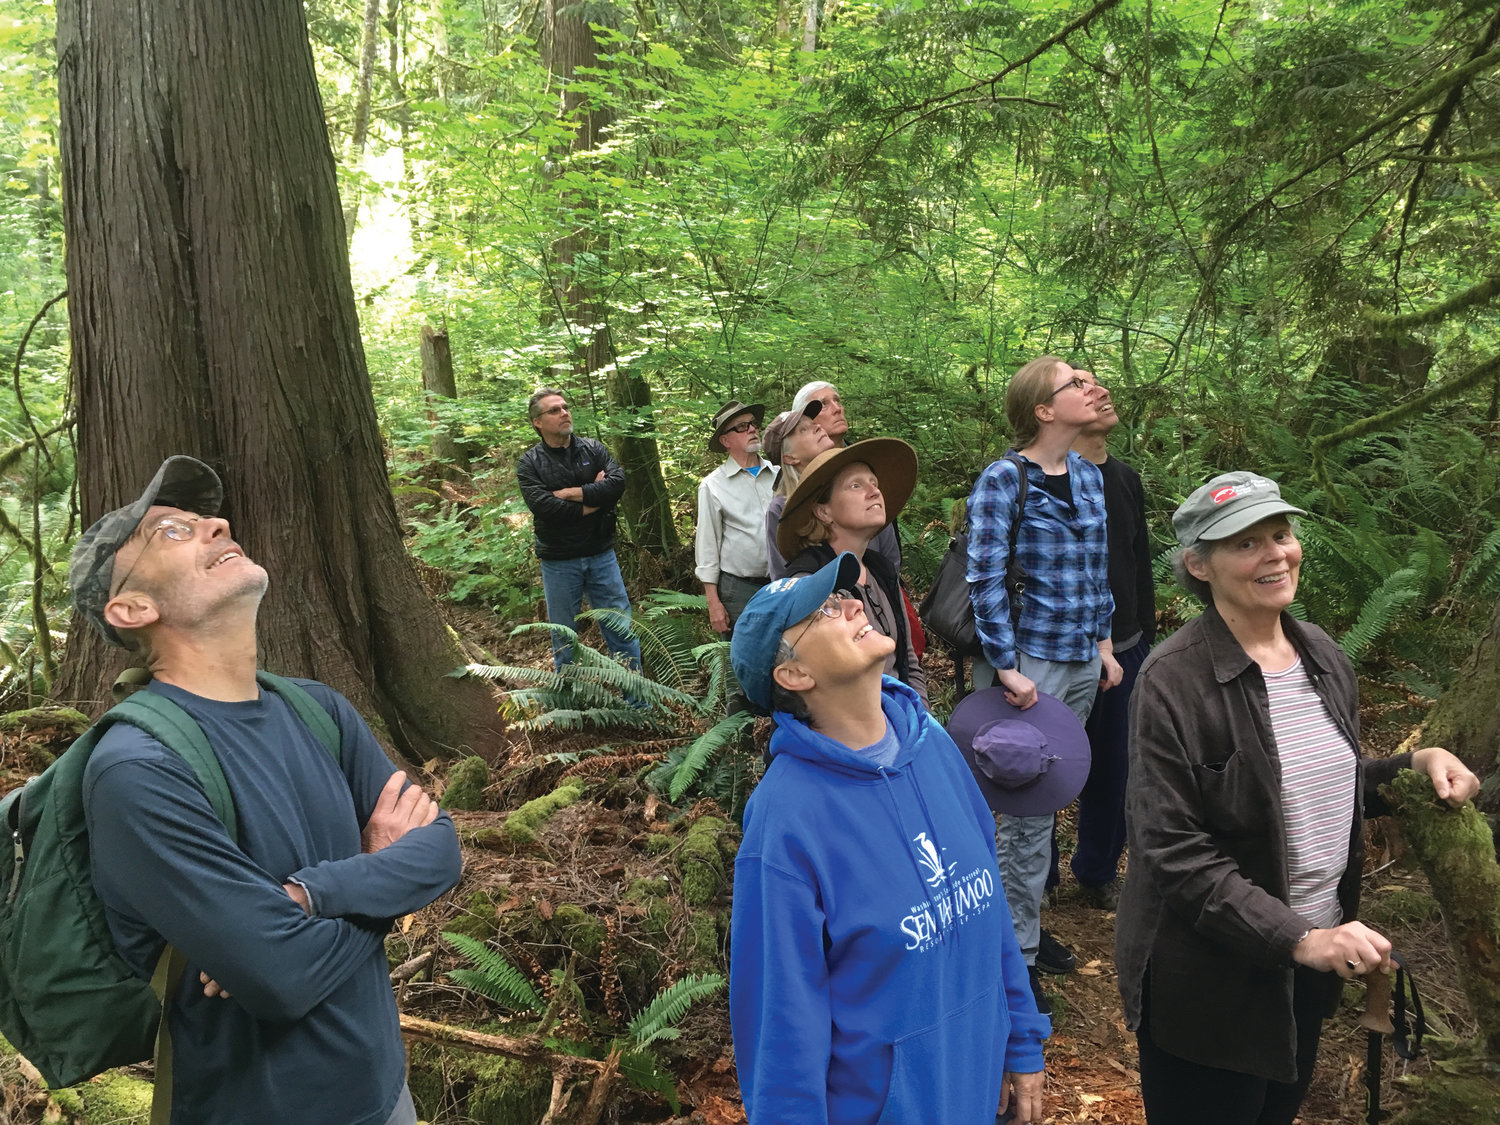 Admiring the trees, a group of supporters learn about a 21-acre forest addition to NWI's Tarboo Wildlife Preserve, protected with easements held by the U.S. Navy and Jefferson Land Trust.